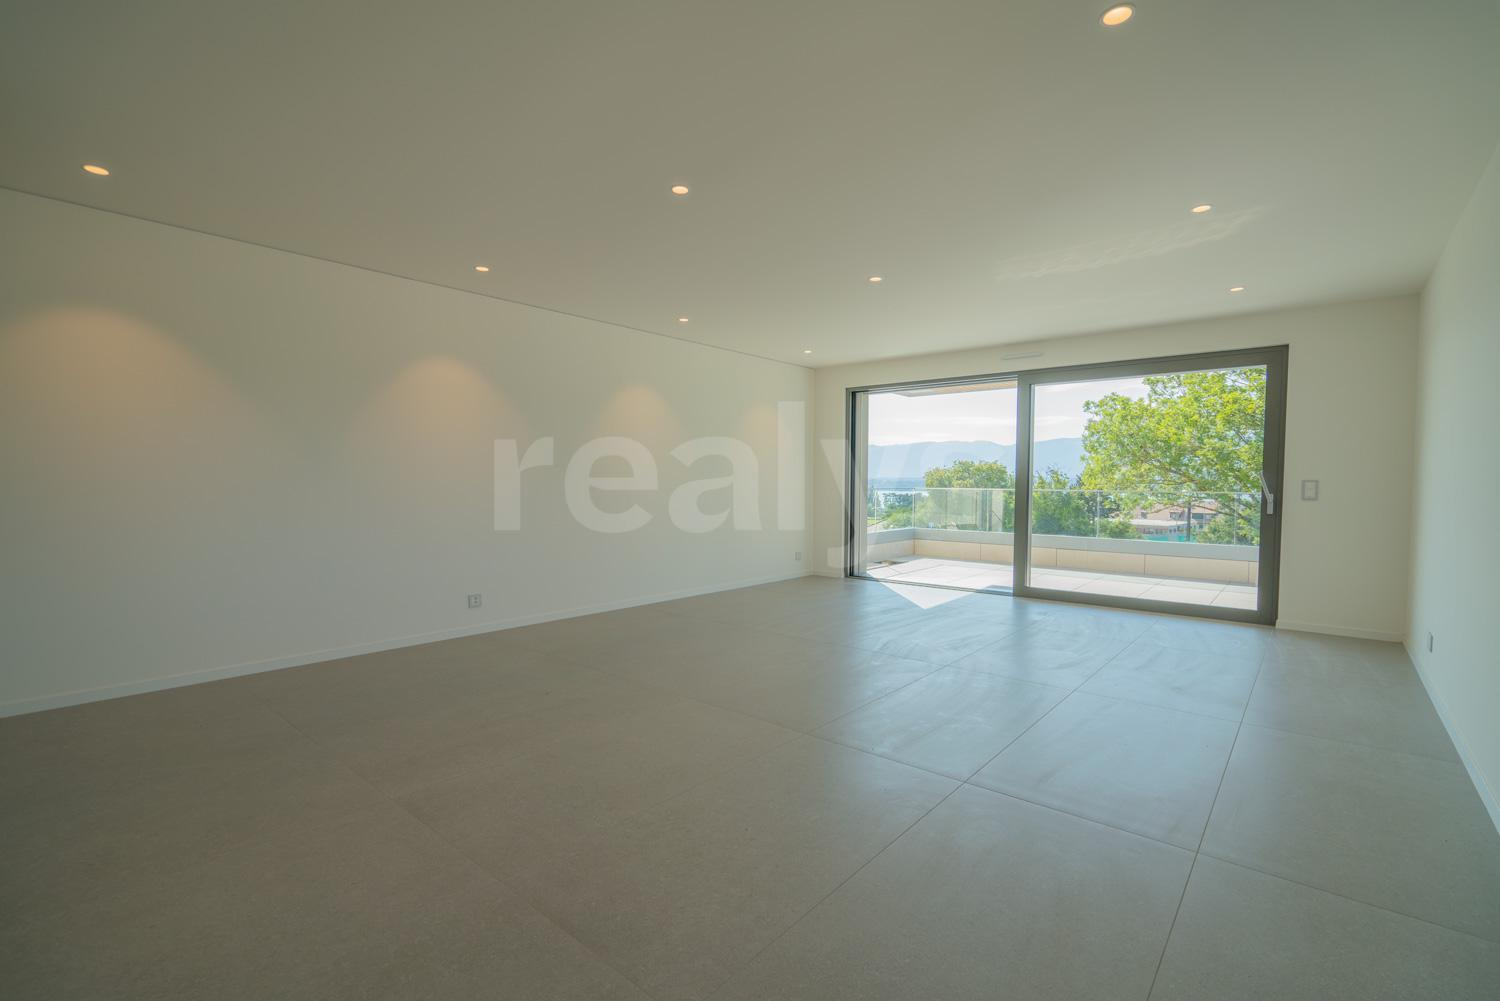 PrivaliaBeautiful 6-room flat in a new high-end residence